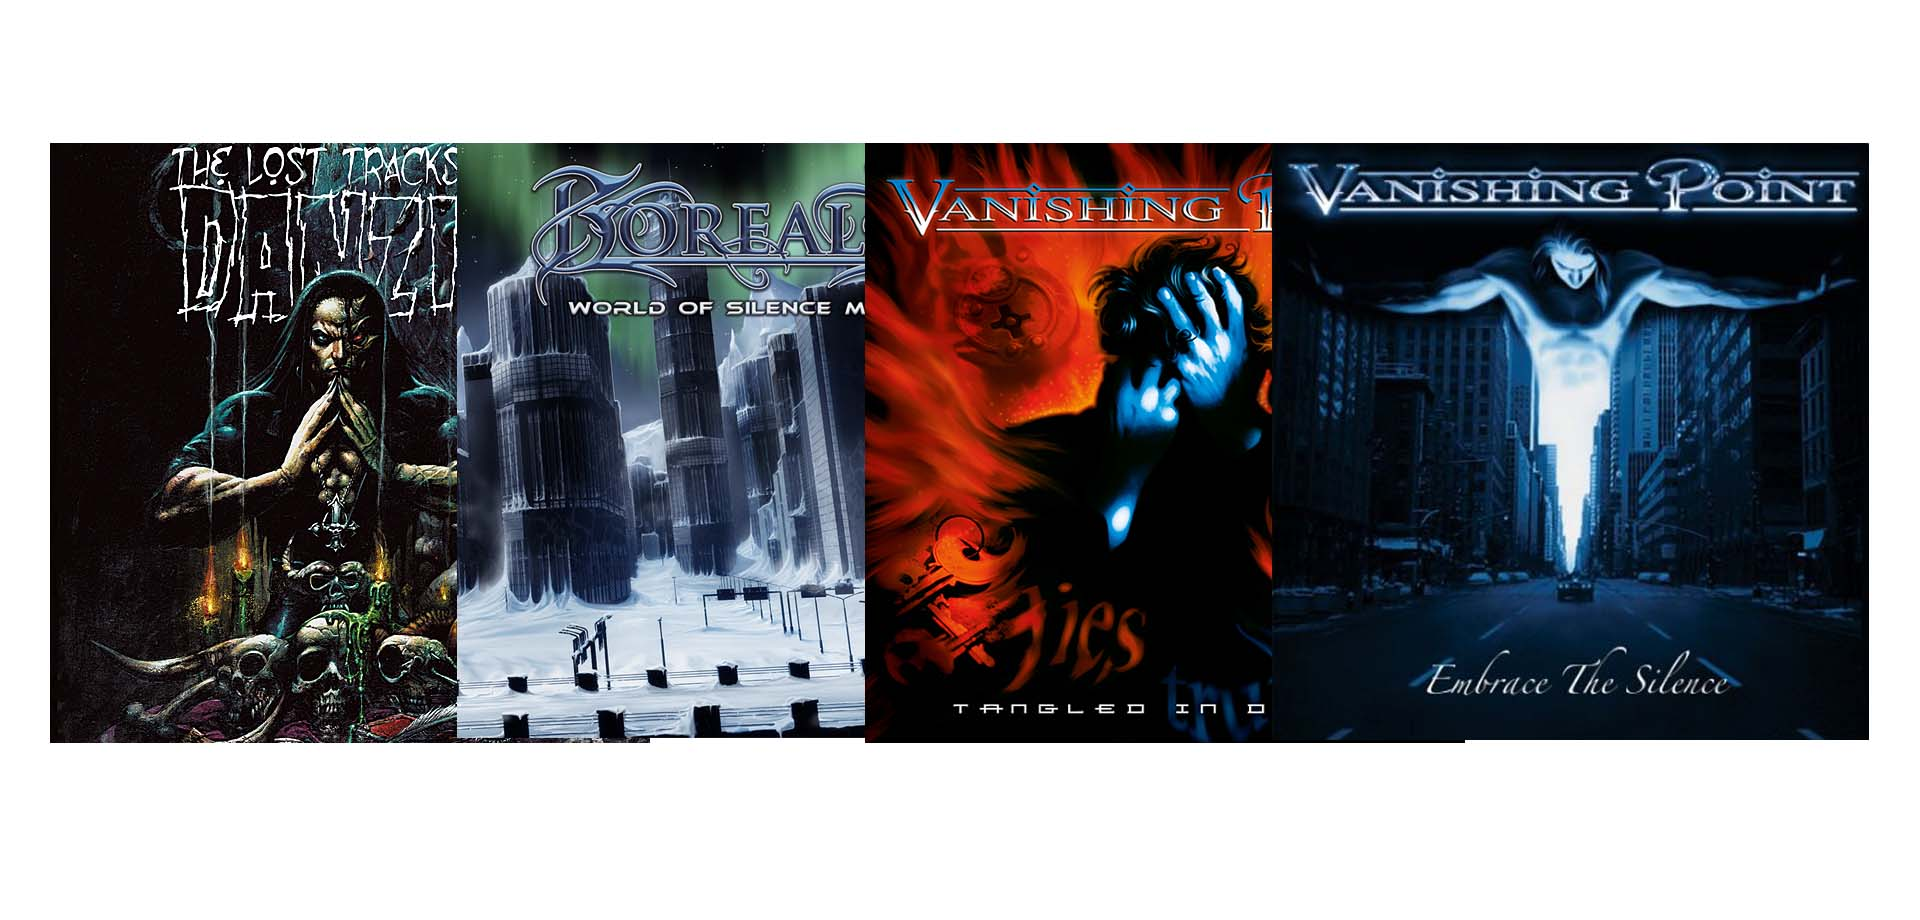 RE-RELEASES - Vanishing Point, Borealis, Danzig